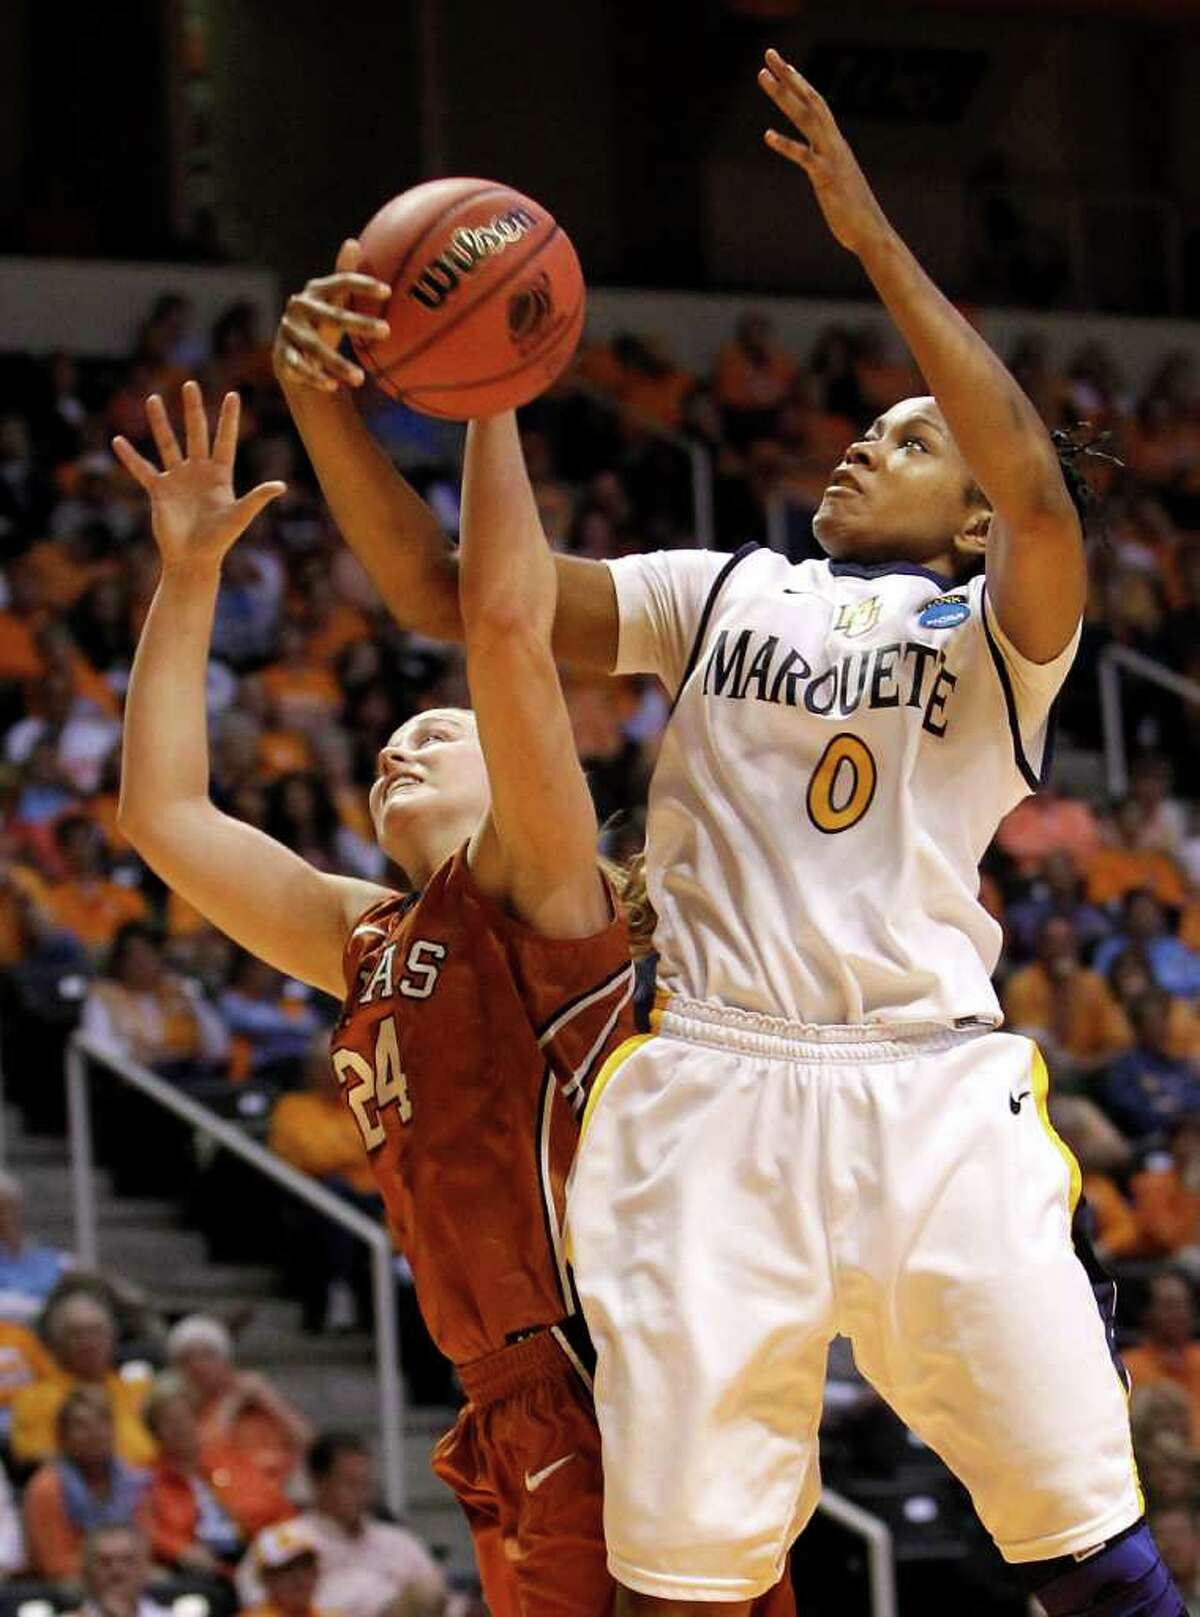 Marquette forward Jasmine Collins (0) takes a rebound away from Texas guard Chassidy Fussell (24) during the first half of a first round game in the NCAA women's college basketball tournament on Saturday, March 19, 2011, in Knoxville, Tenn.